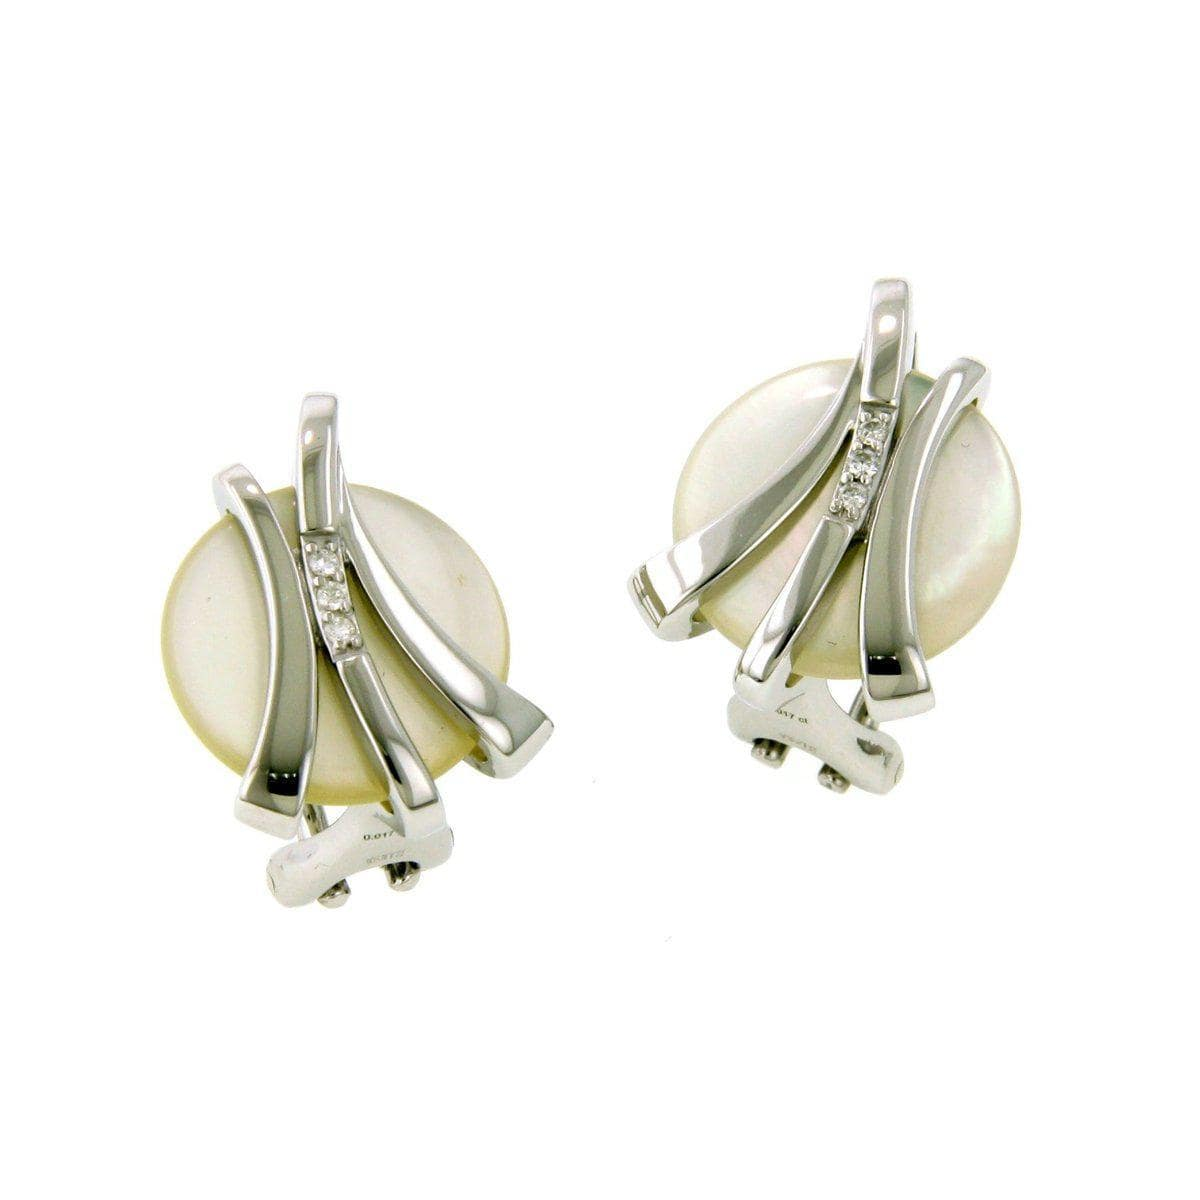 Rhodium Plated Sterling Silver Mother of Pearl Brilliant Diamond Earrings - 01/82634-Breuning-Renee Taylor Gallery